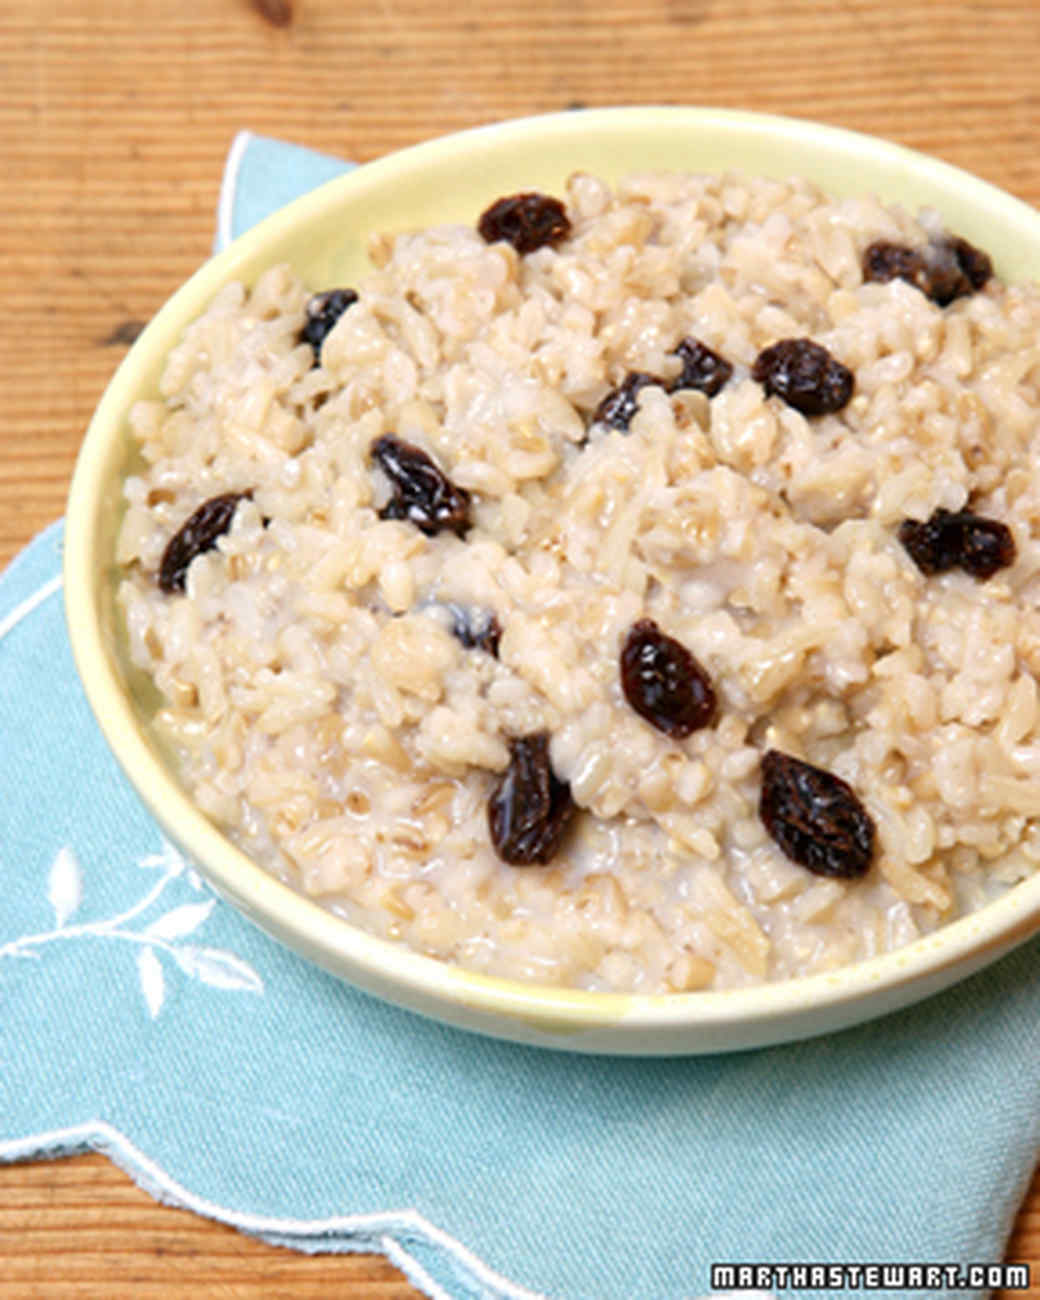 Food monster recipes easy oatmeal cereal recipes easy oatmeal cereal recipes ccuart Image collections